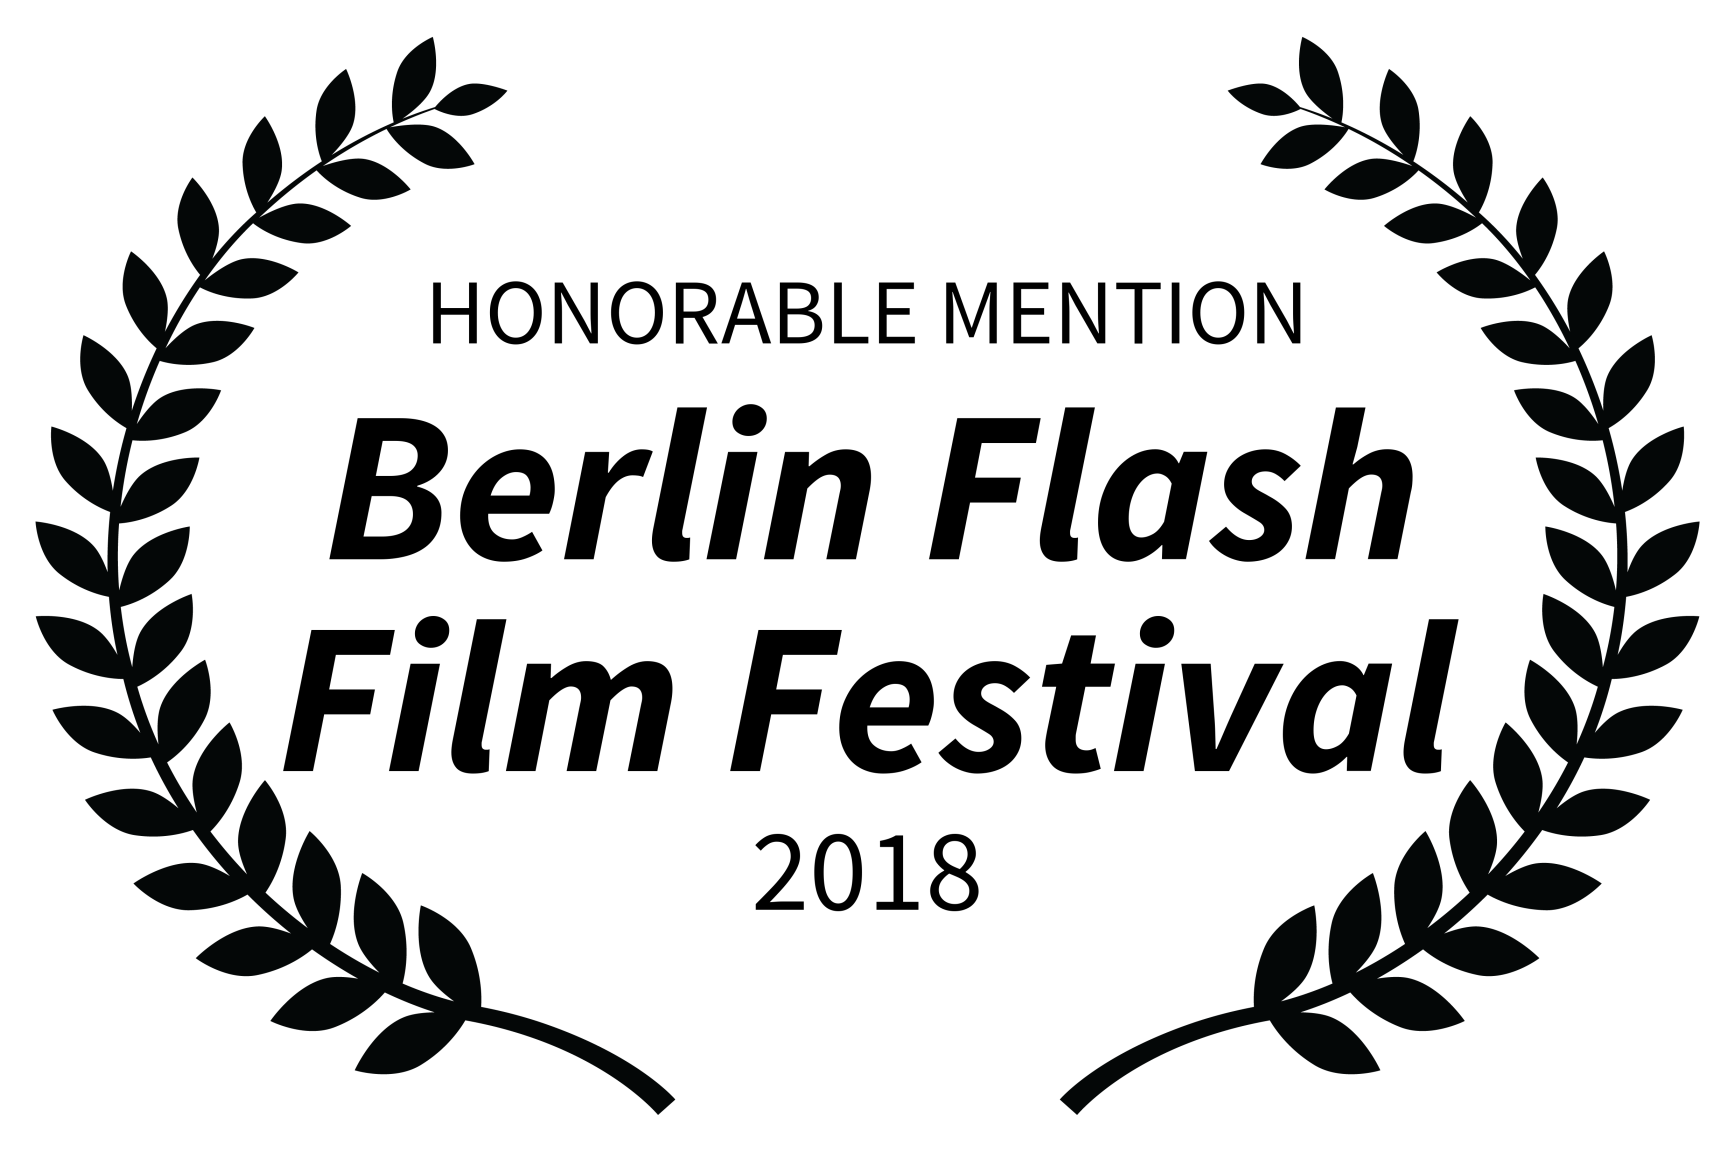 HONORABLE MENTION - Berlin Flash Film Festival - 2018